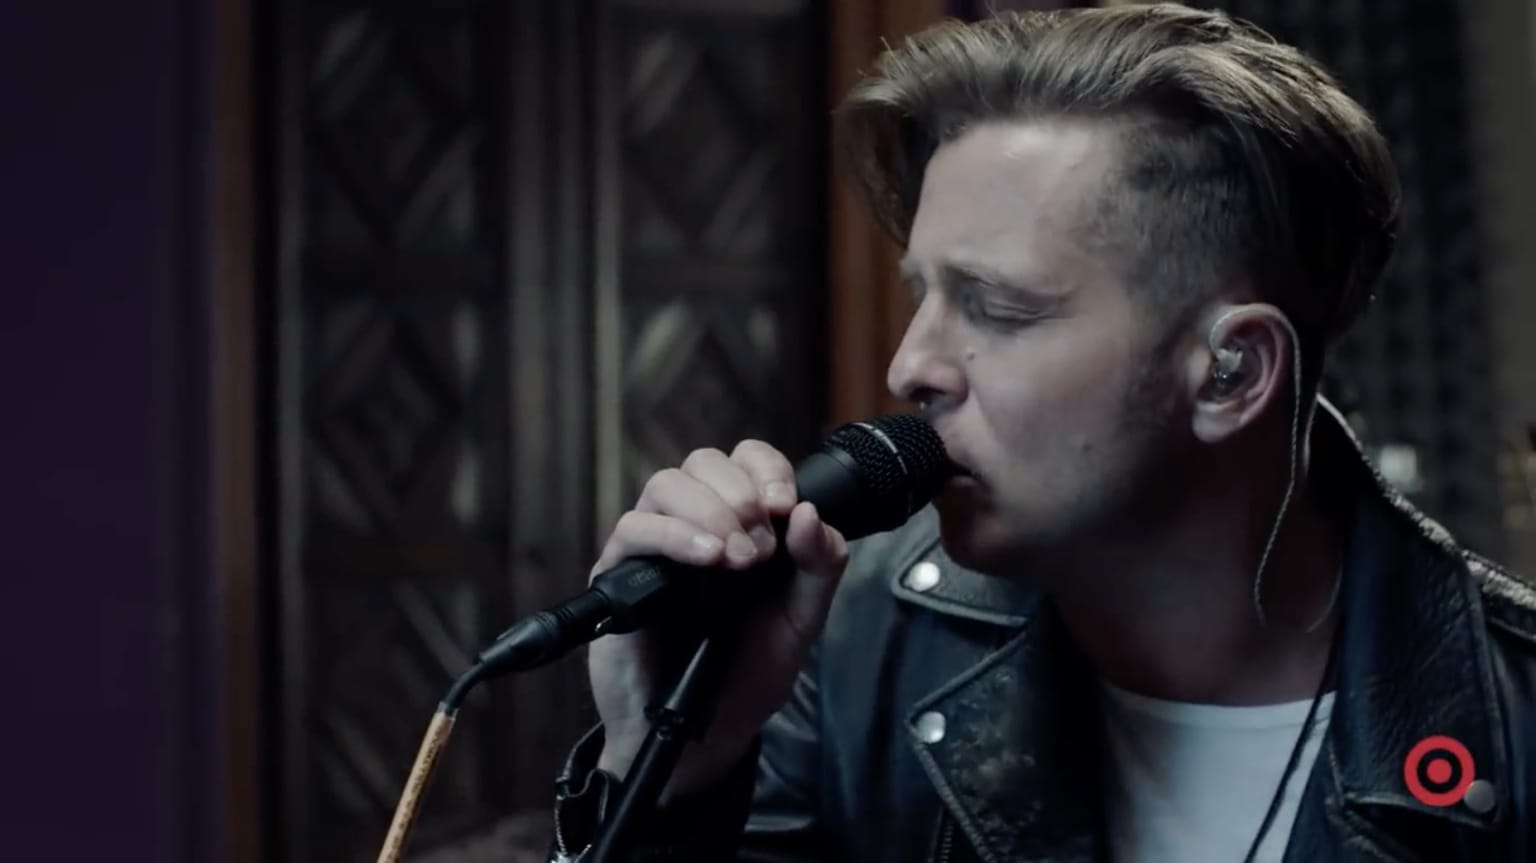 Target + One Republic - Exclusive Track Performances